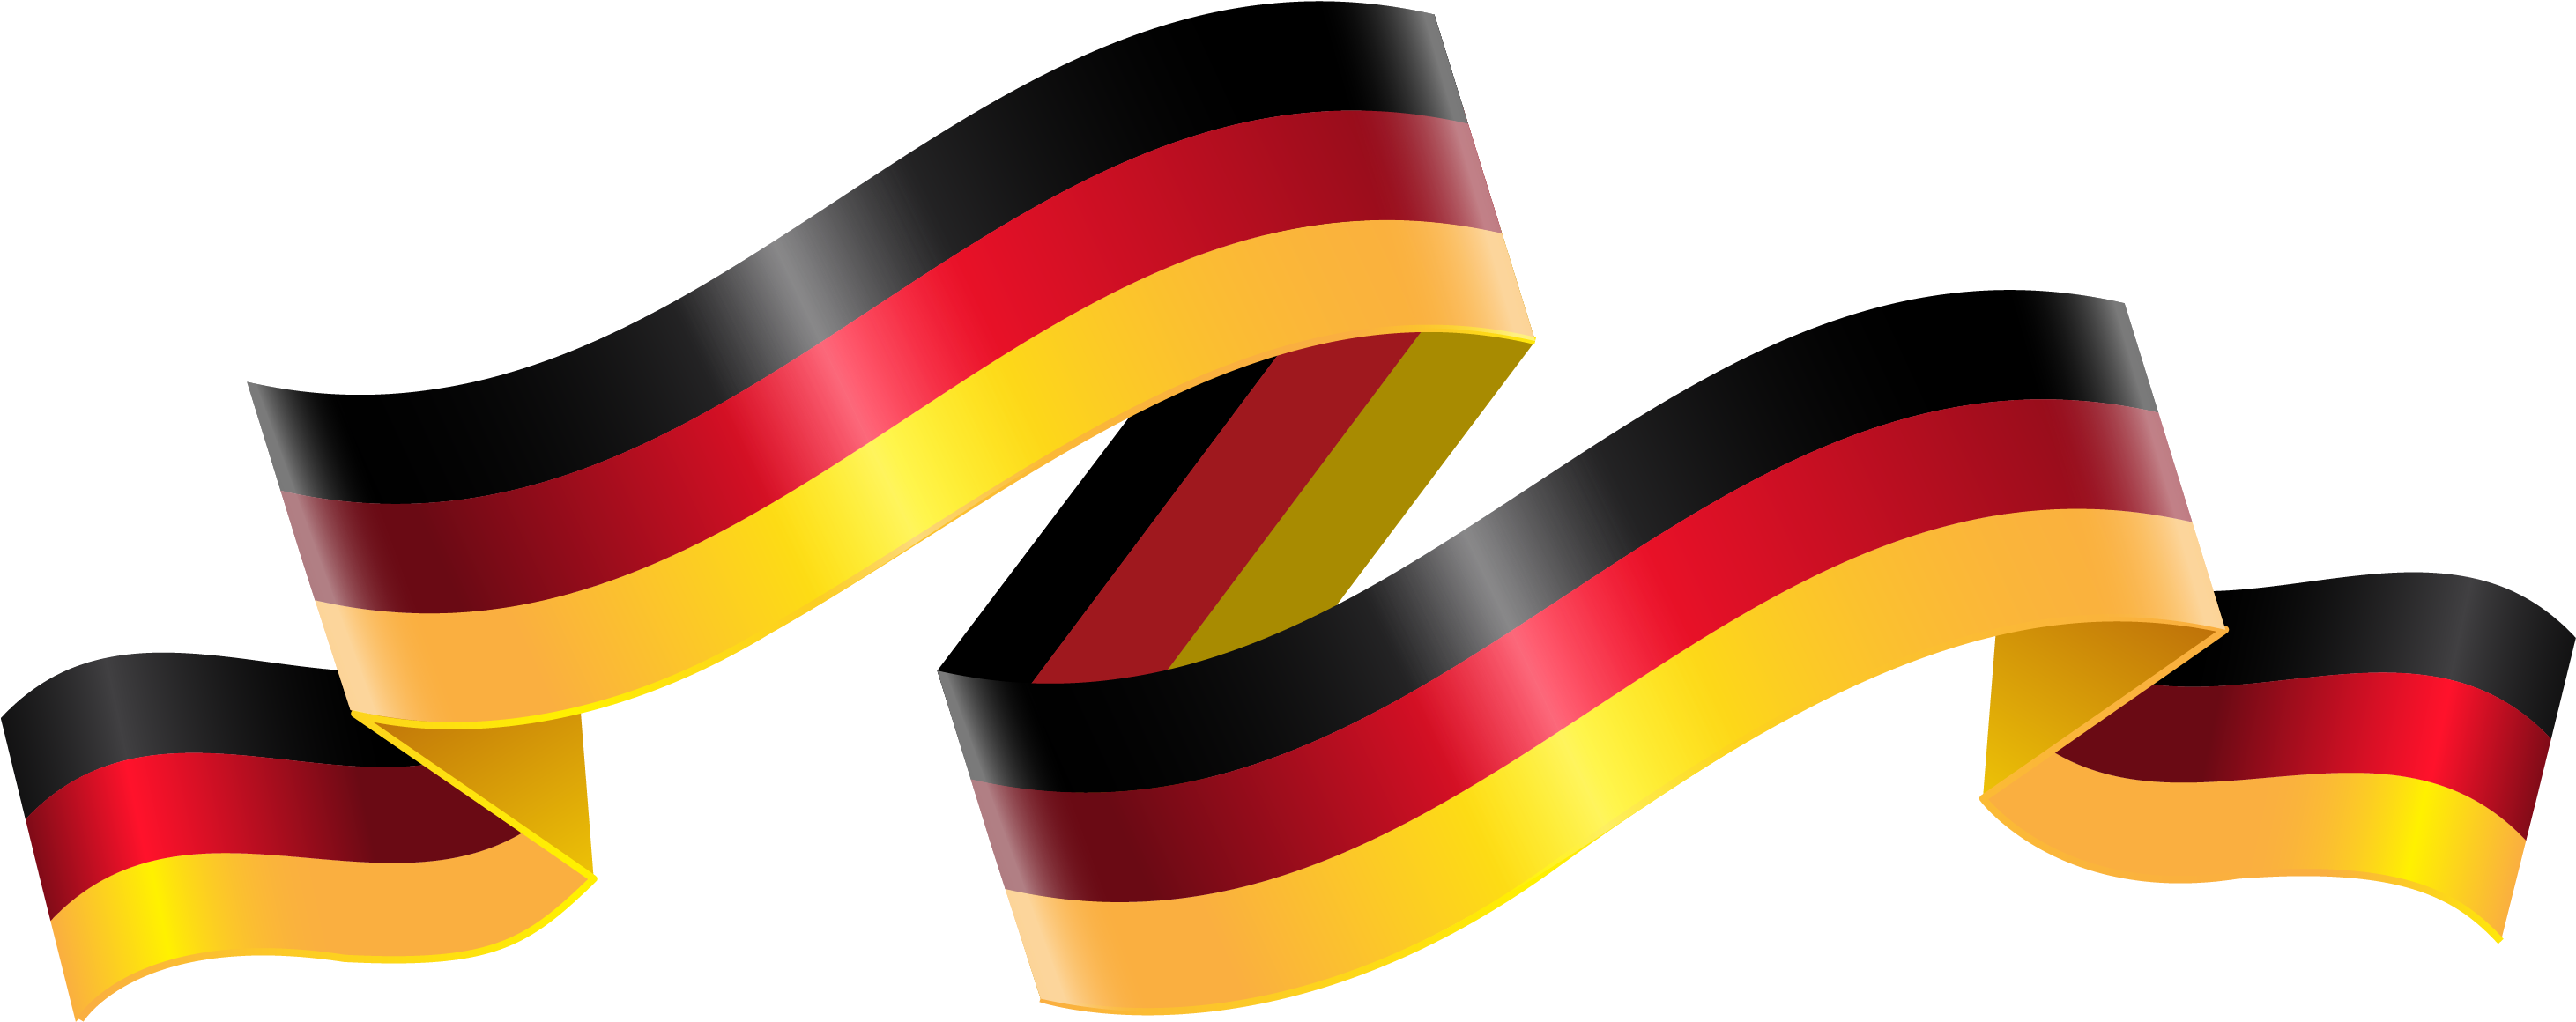 Clipart Stock Flag Of Germany German Transprent Png.